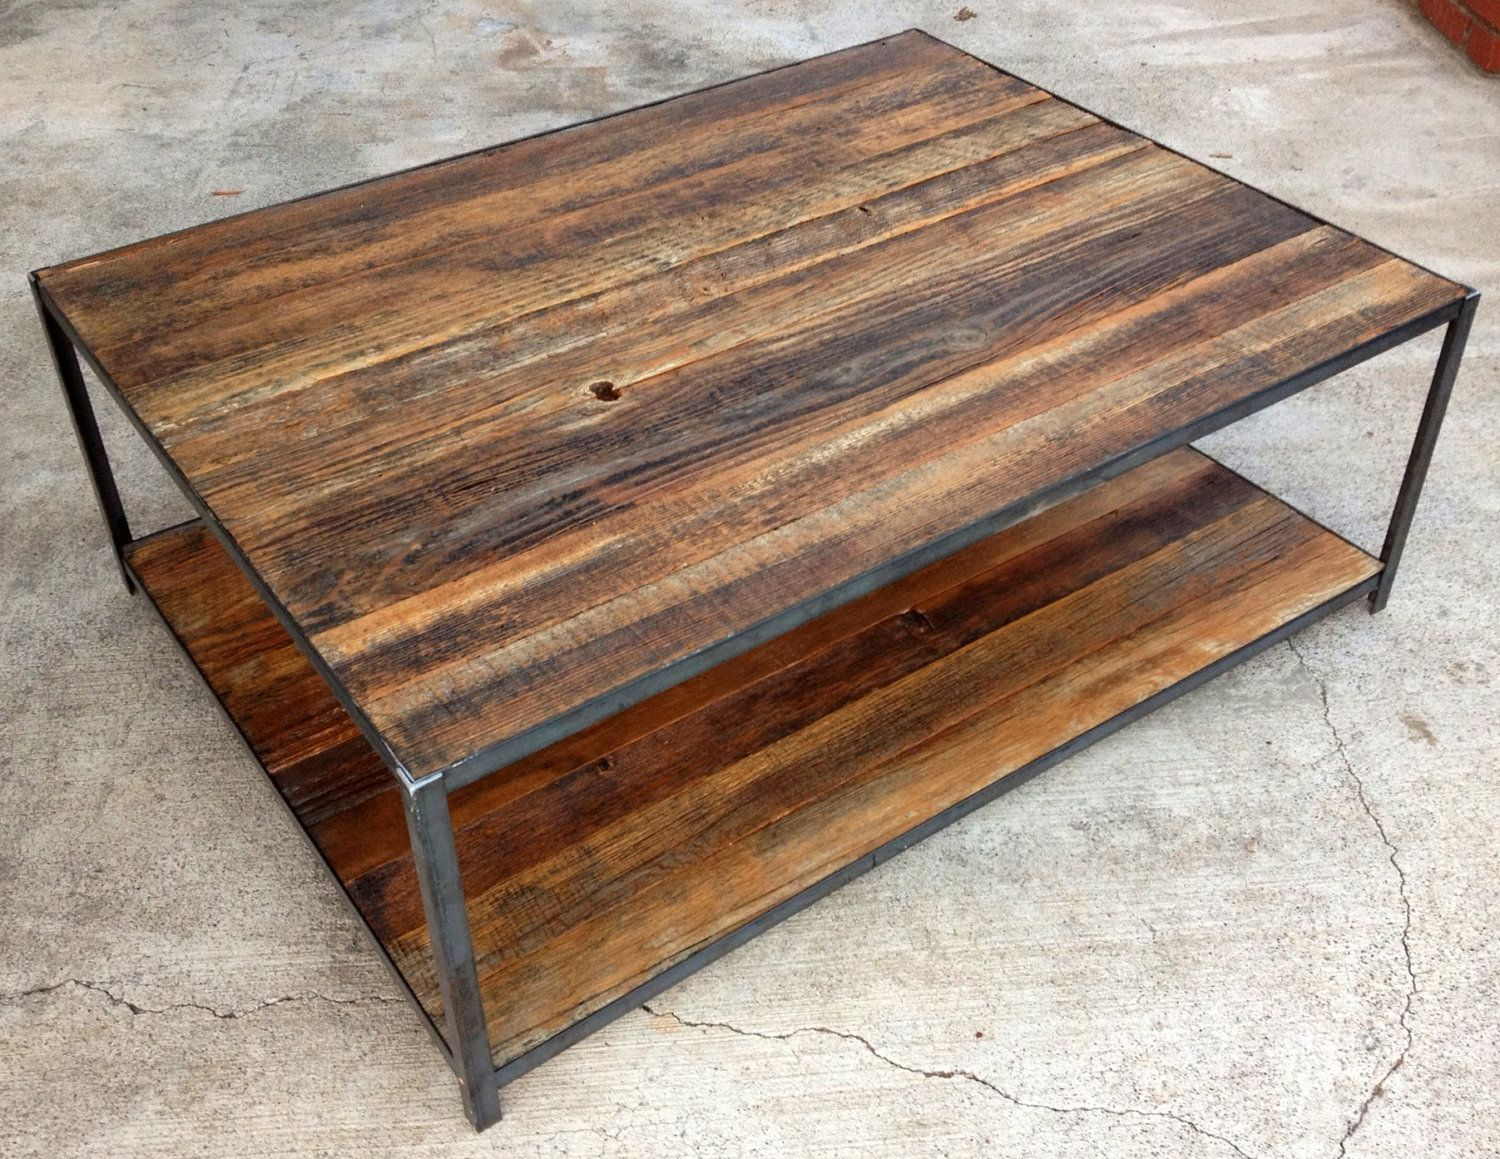 reclaimed wood furniture ideas. reclaimed wood and angle iron coffee table 40000 via etsy furniture ideas a